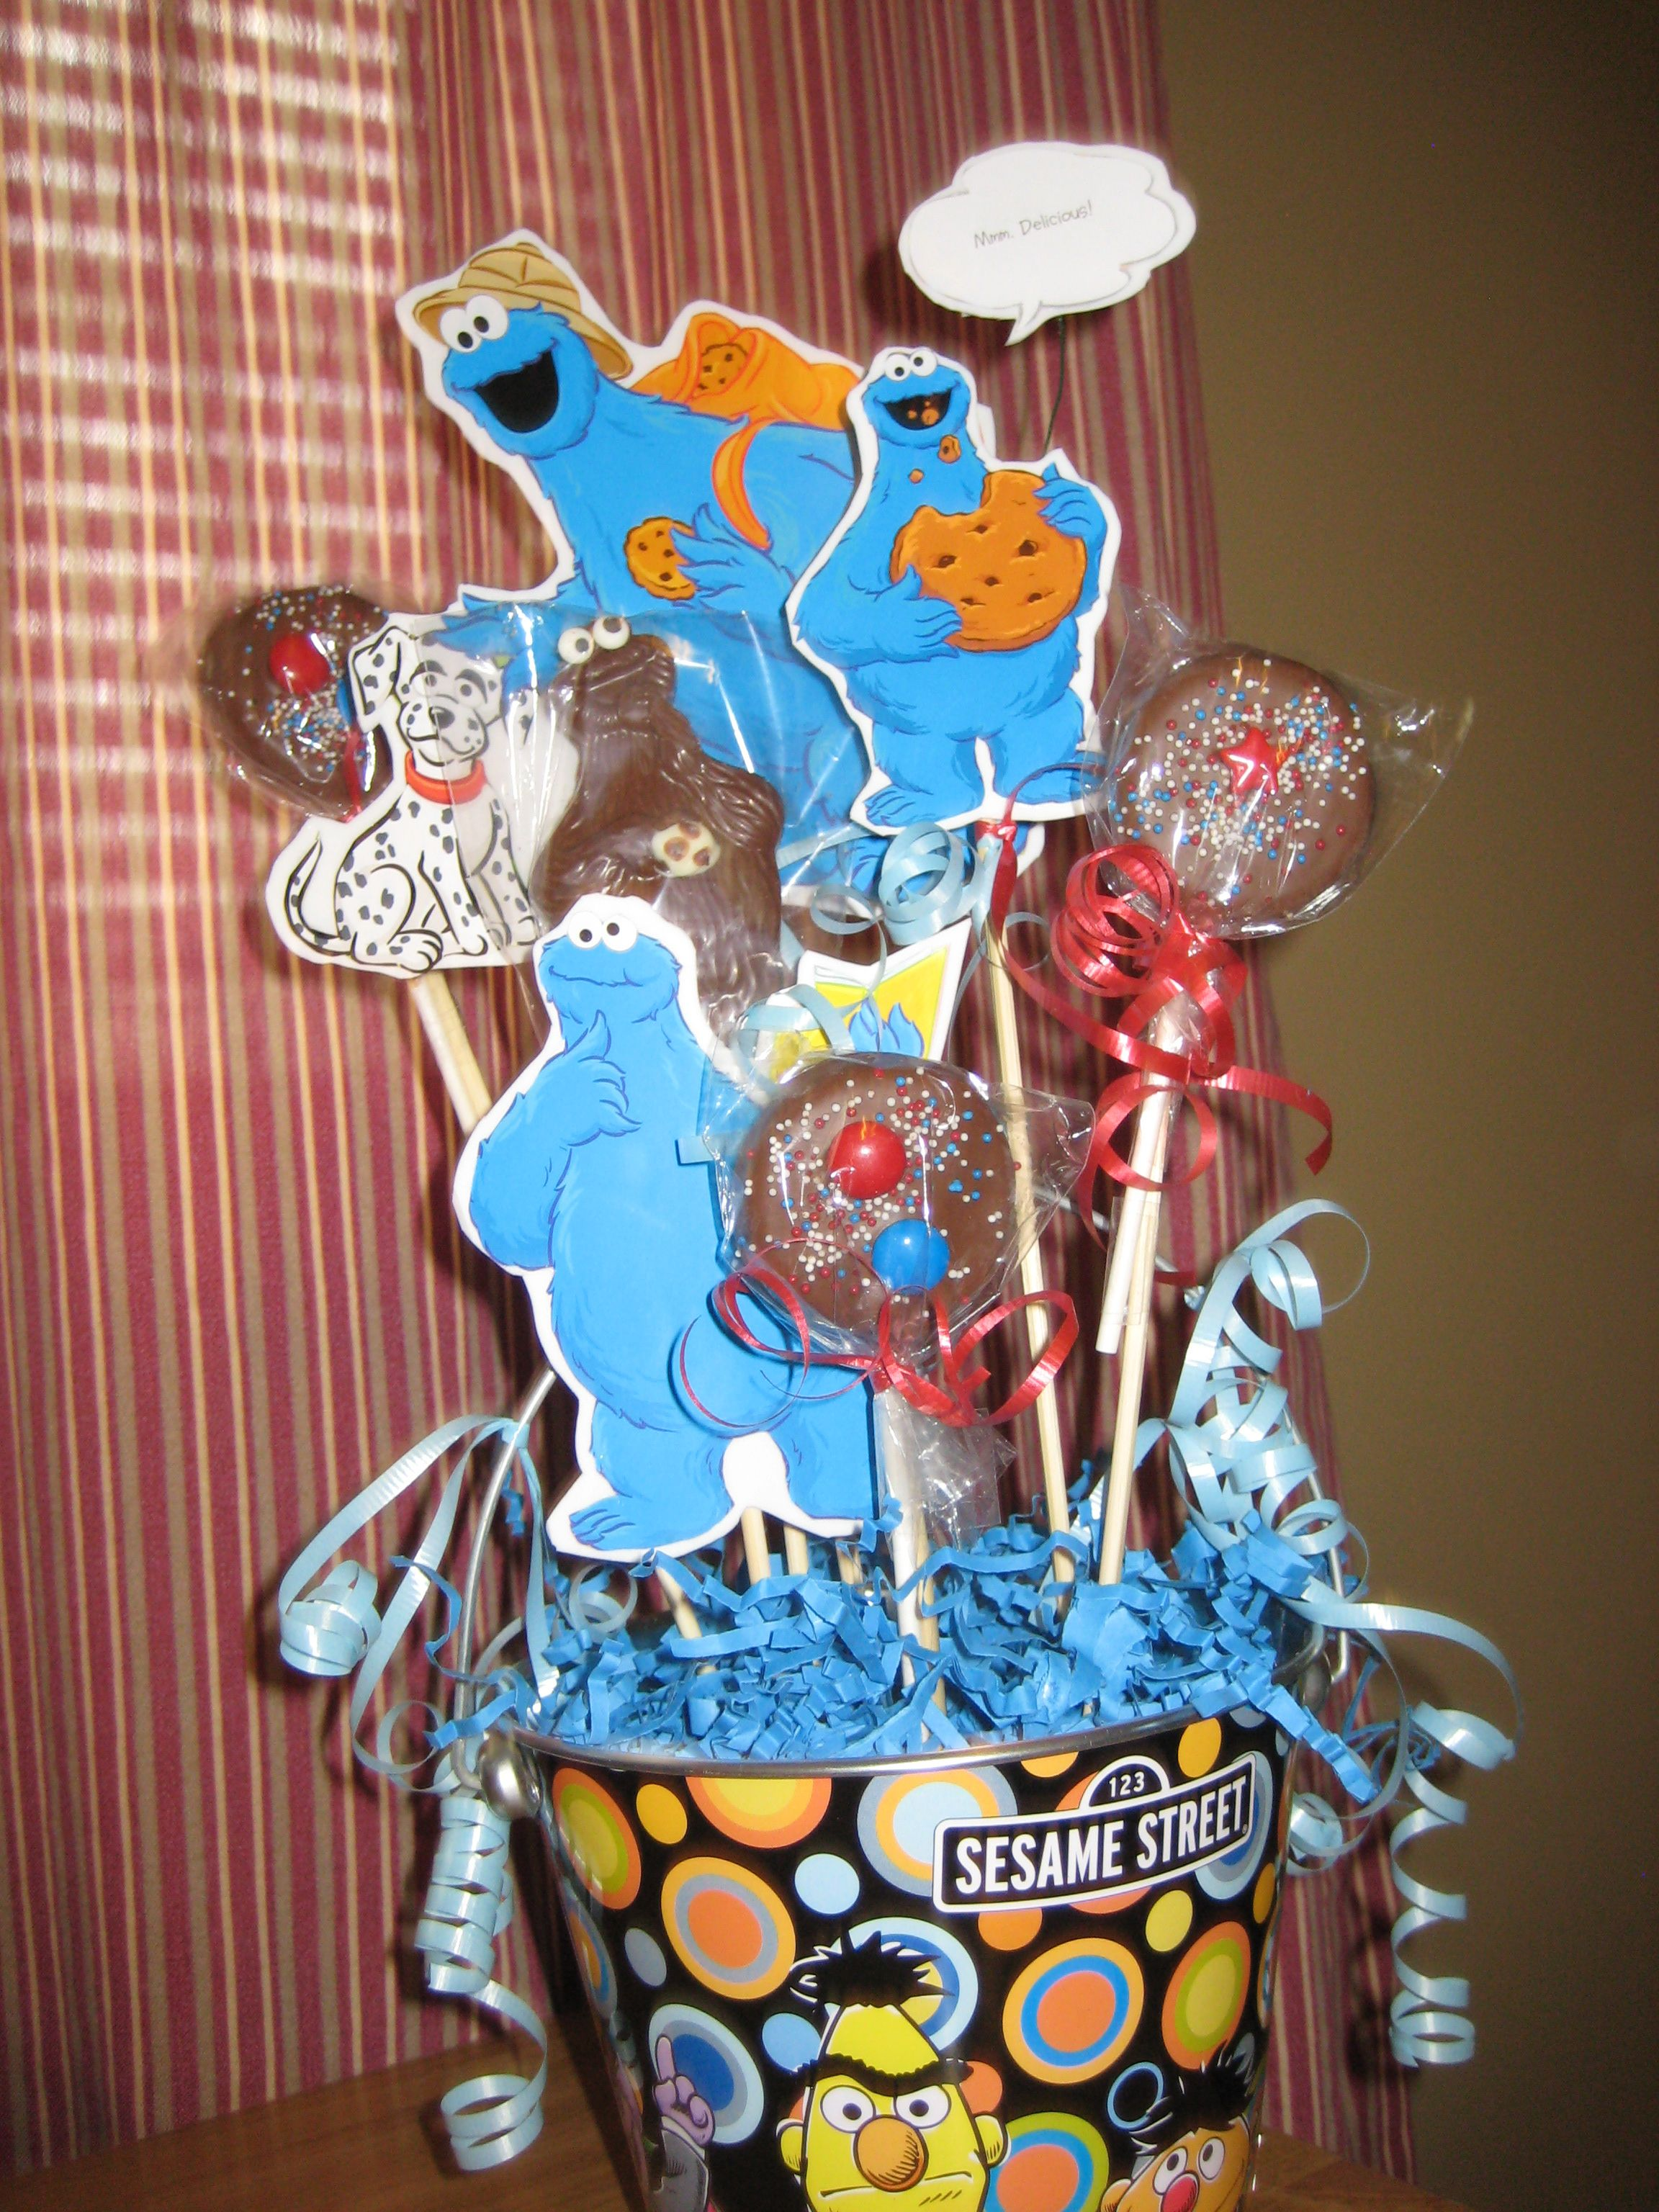 Sesame Street Centerpiece Cookie Monster With Oreo Cookies On A St